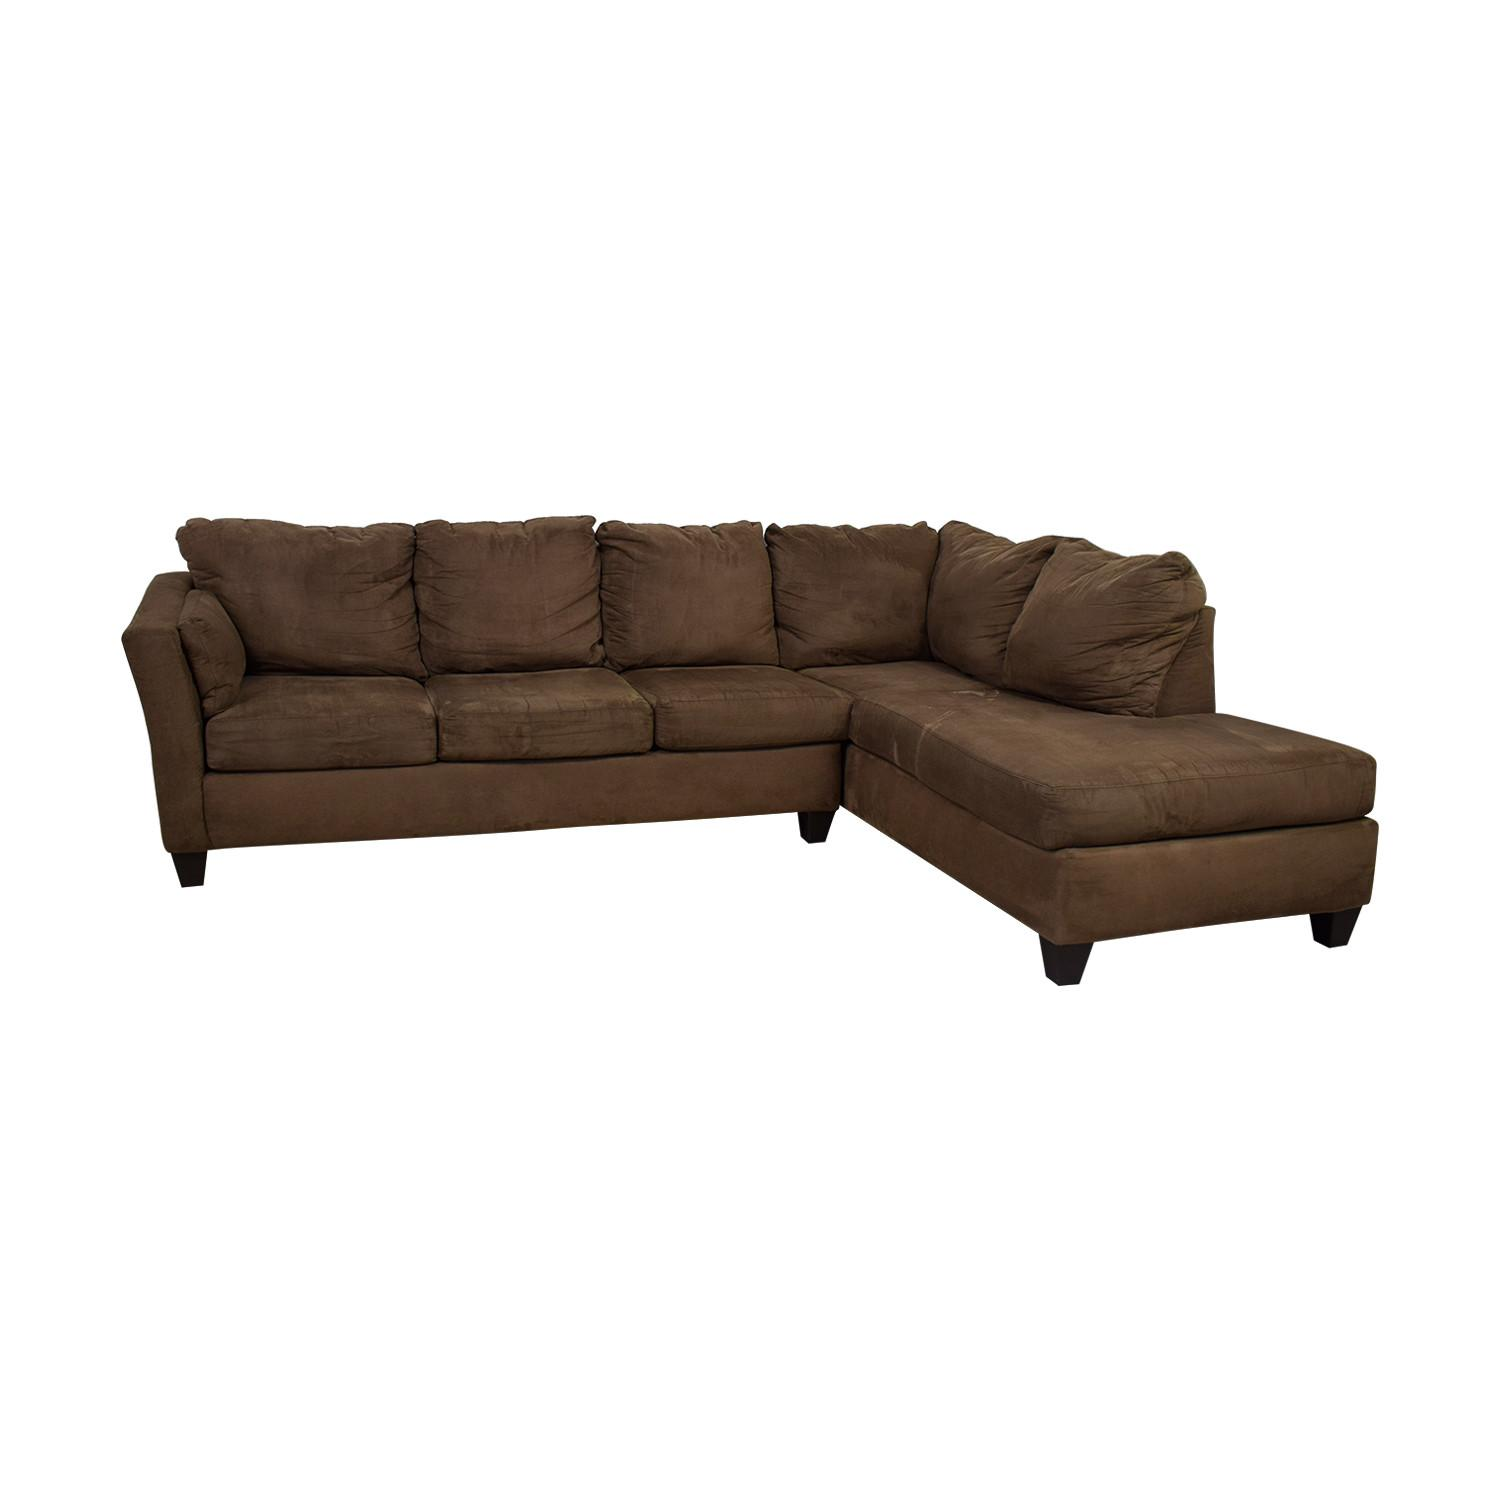 Bob's Discount 3 Piece Brown Sectional